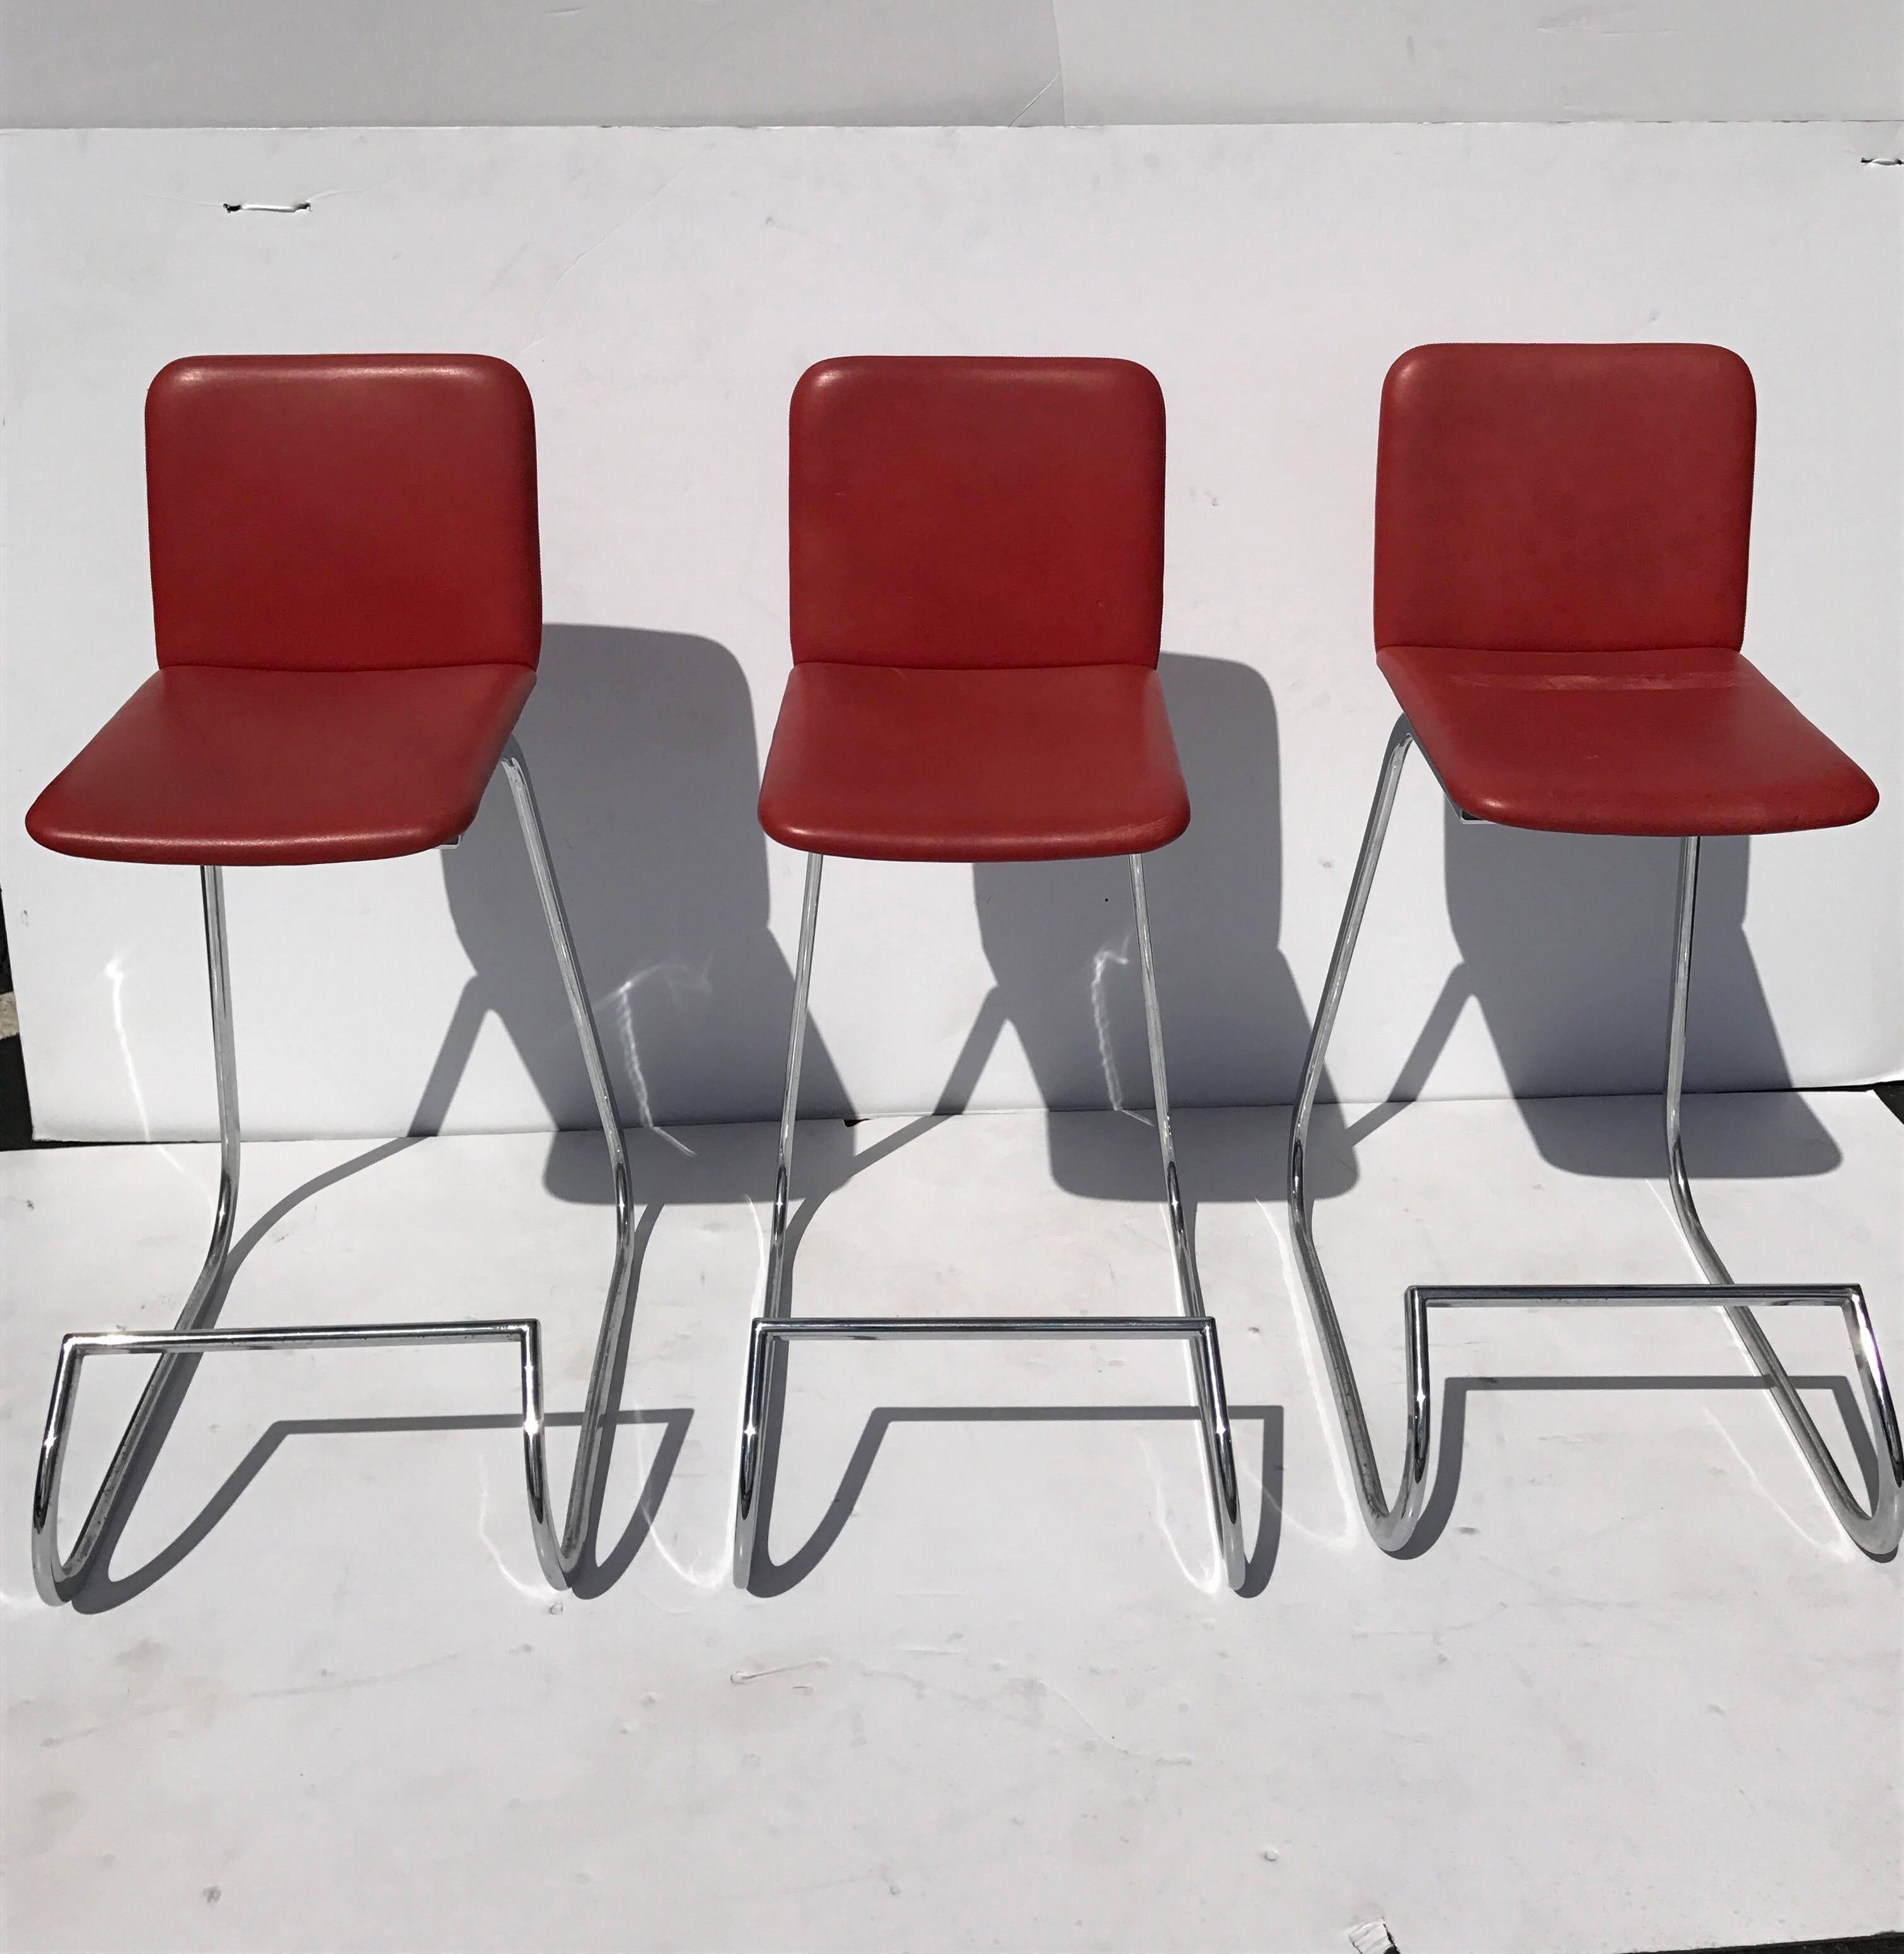 Stendig Metal Amp Faux Leather Bar Stools Set Of 3 Chairish